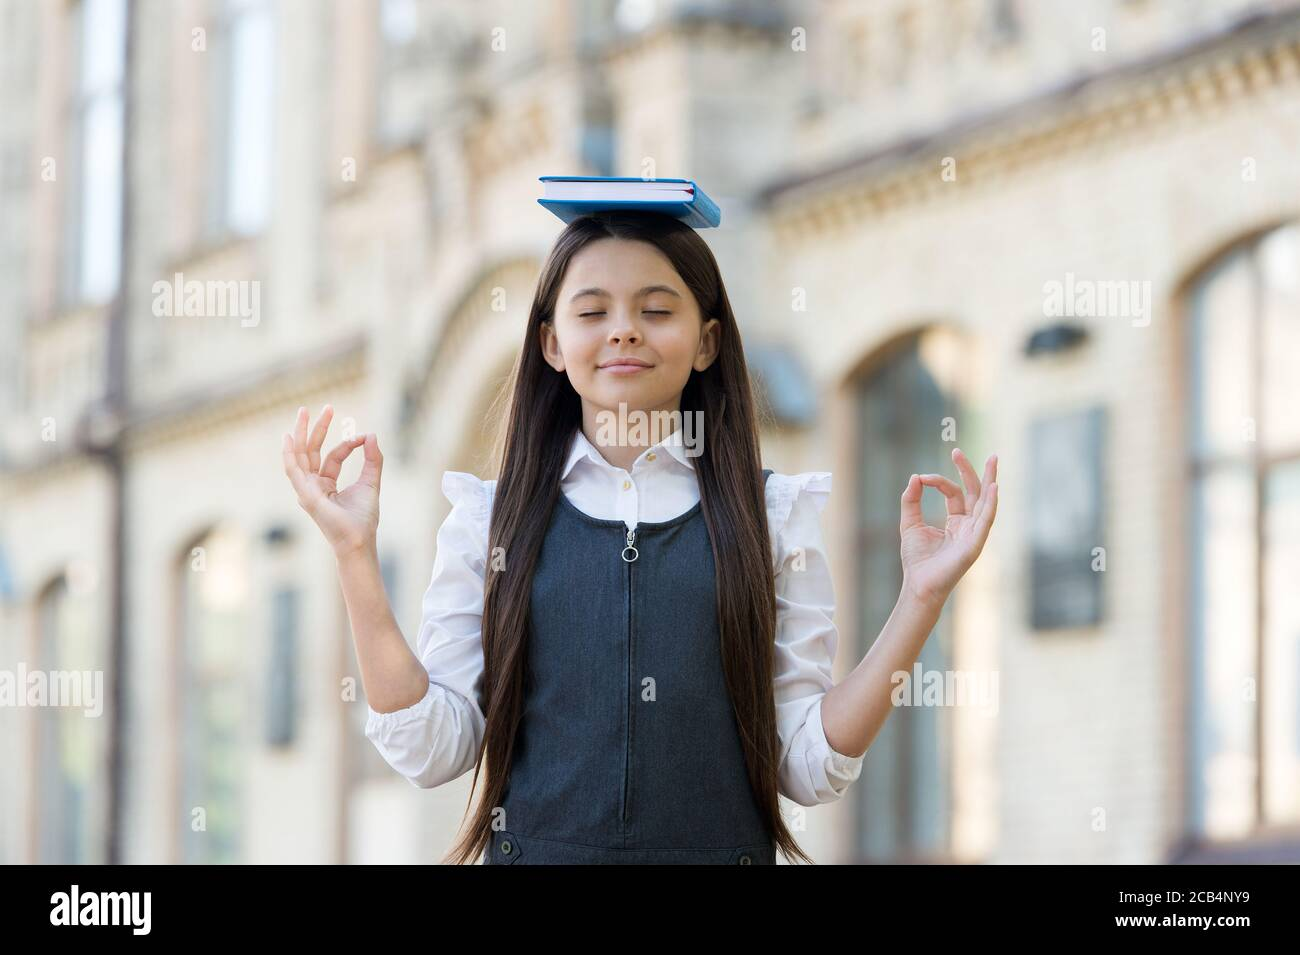 Calm the mind. Little child do meditation outdoors. Small girl do mudra hands holding book on head. Meditation for mental balance. Meditation course for beginner. School and education. Best therapy. Stock Photo